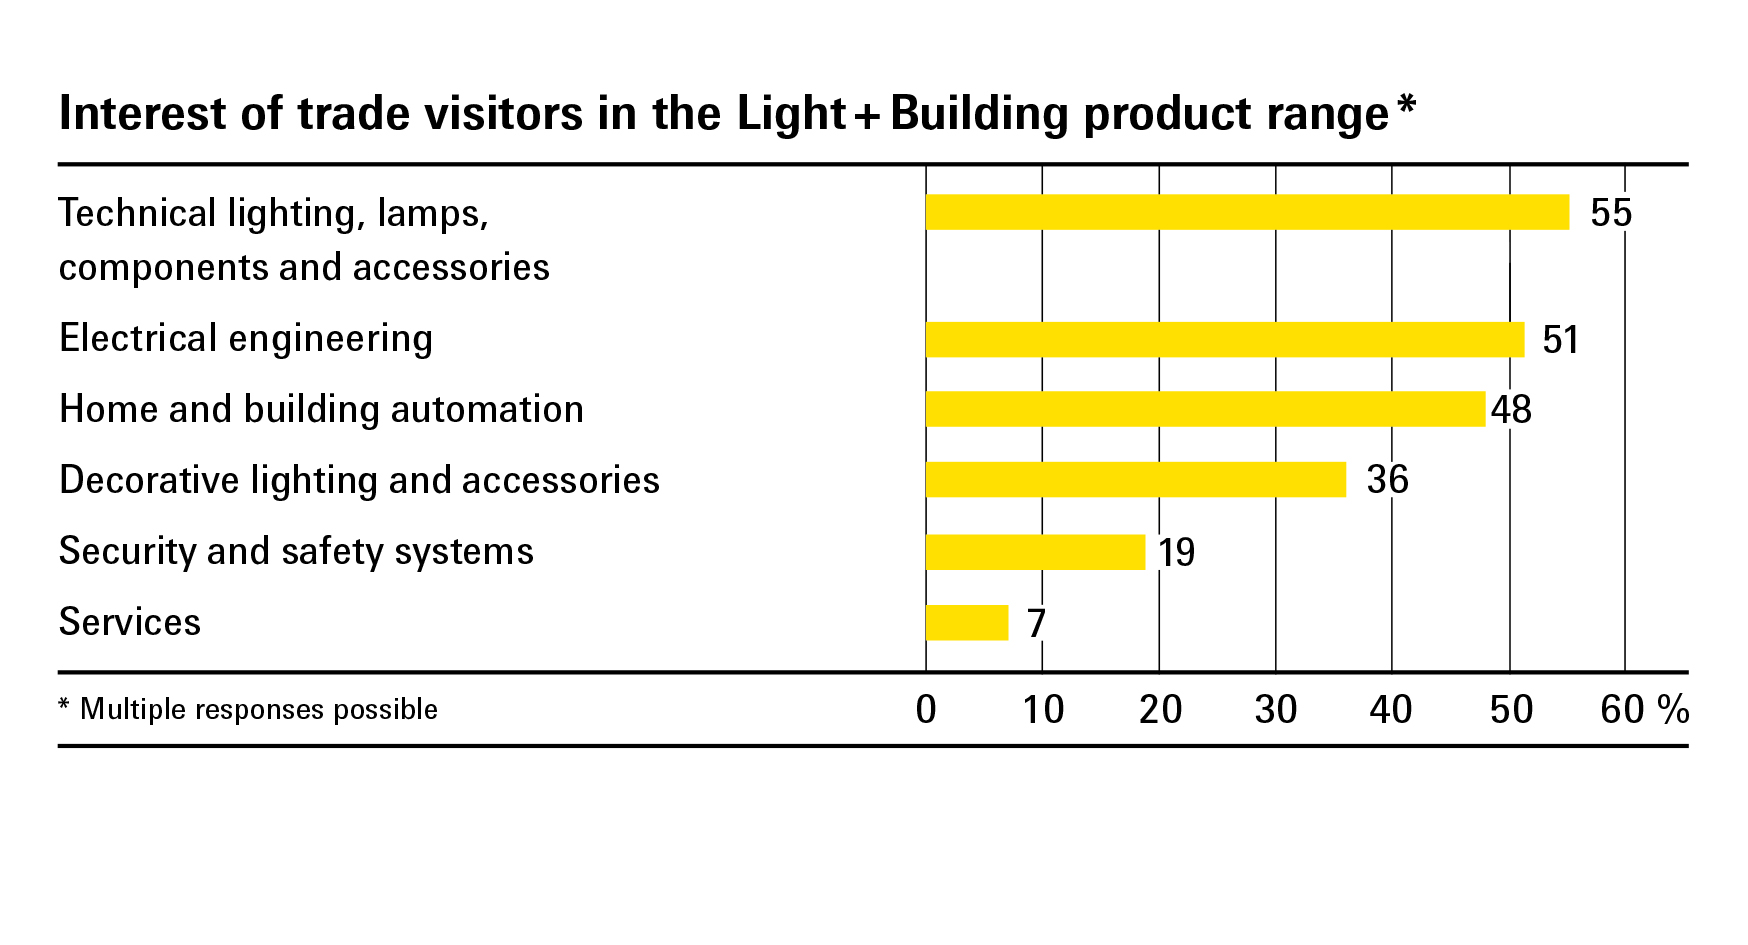 Interest of trade visitors in the Light + Building product range